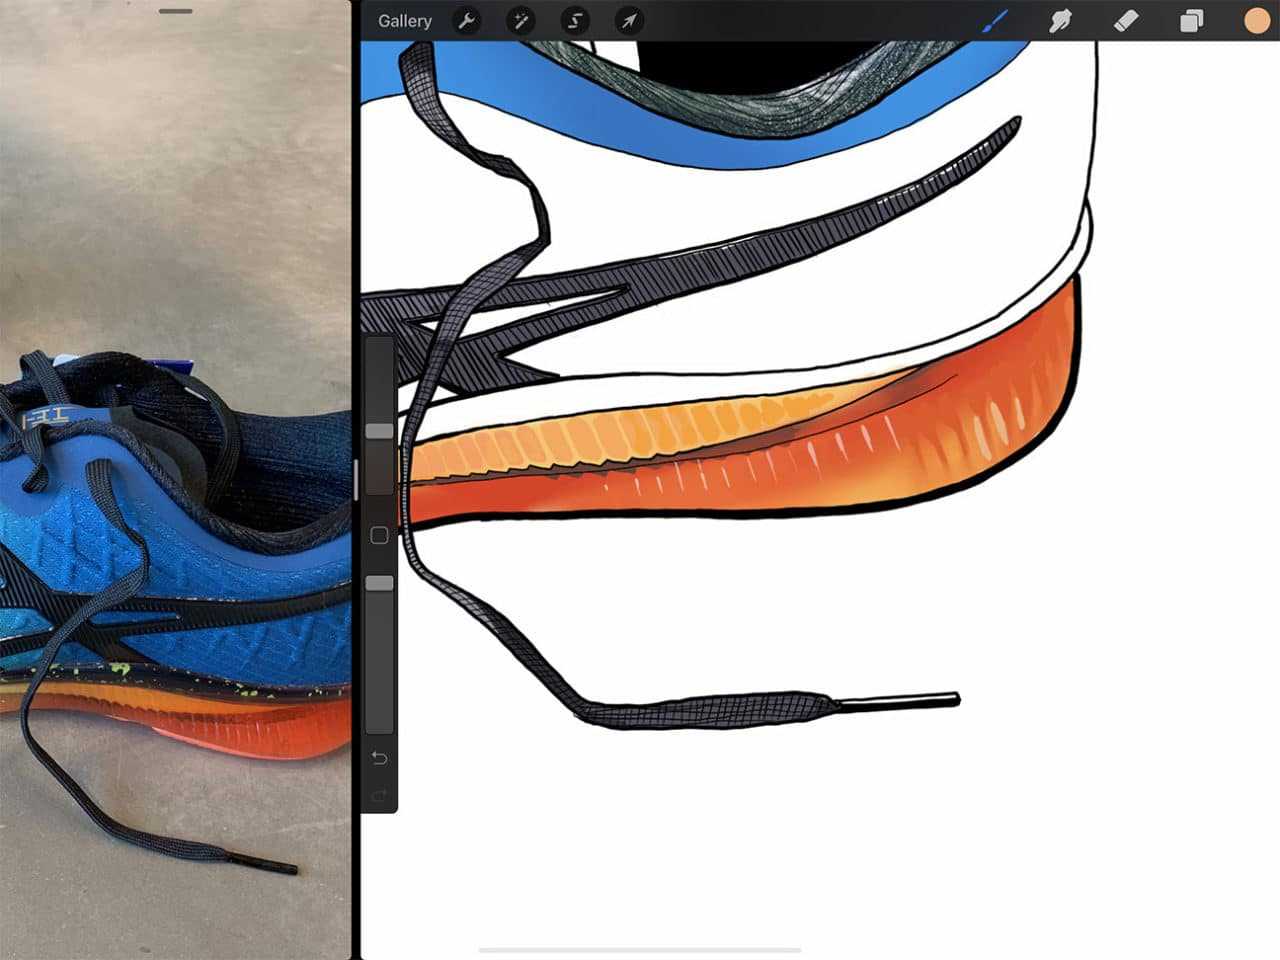 Creating textures from shiny underfoot GEL technology to finely woven shoe laces are no problem on Procreate.